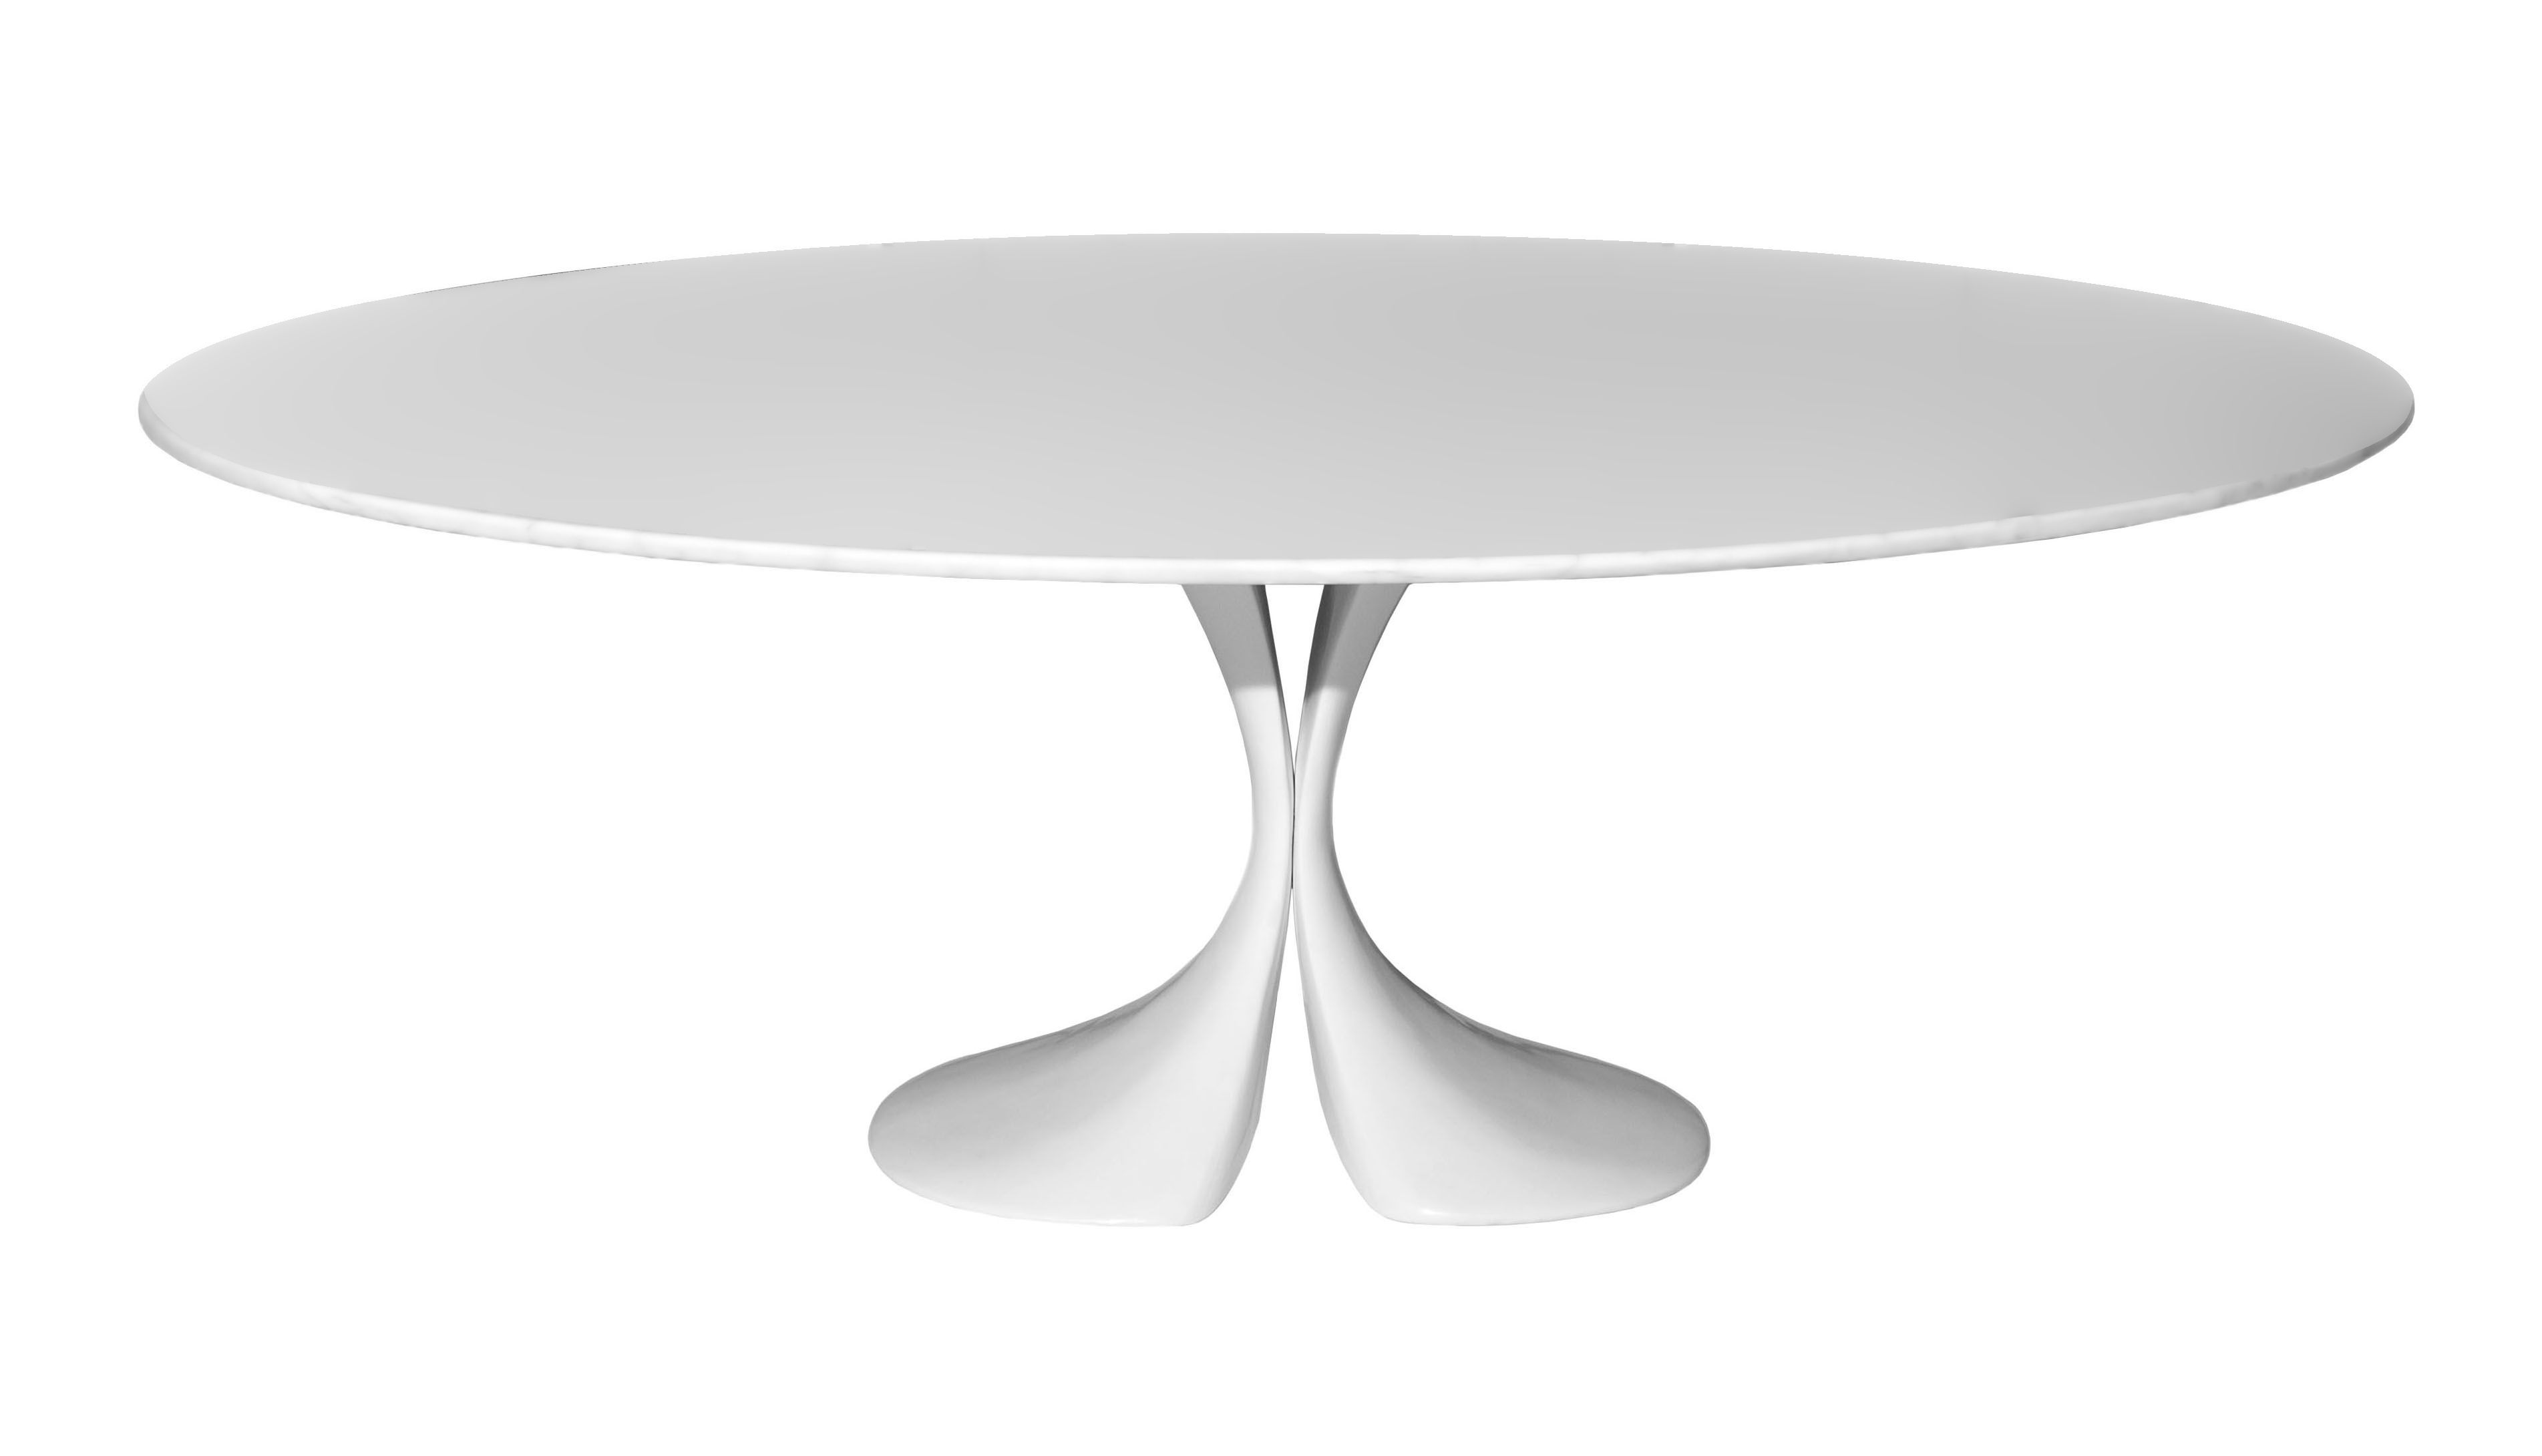 Furniture - Dining Tables - Didymos Table - 180 x 126 cm - Cristaplant top by Driade - White crystalplant top - Cristalplant